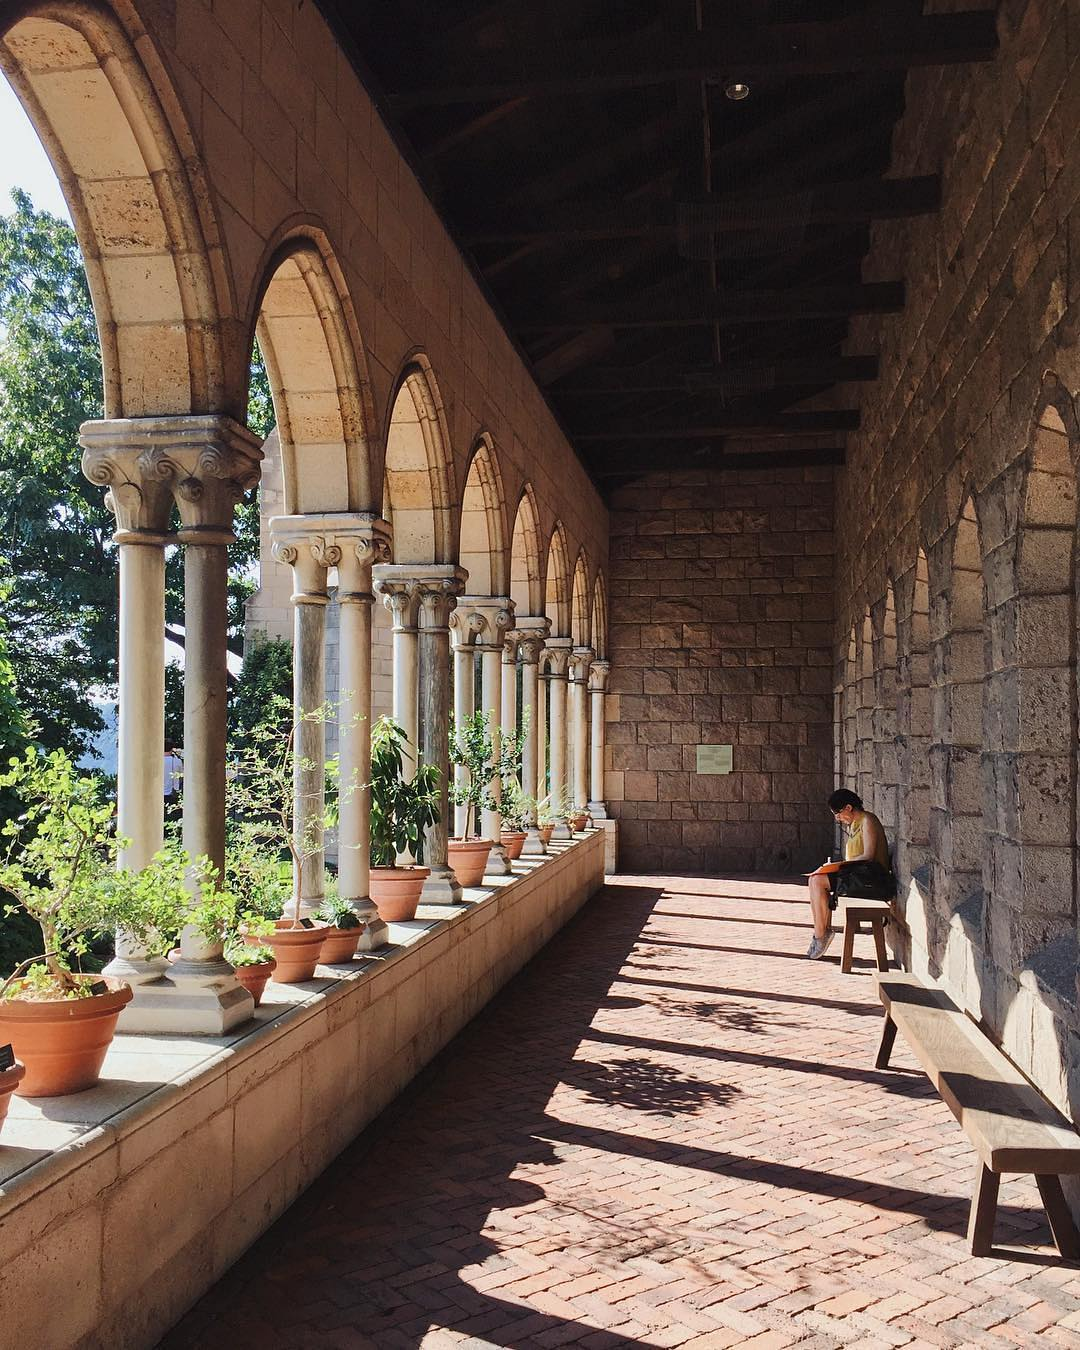 the cloisters met new york